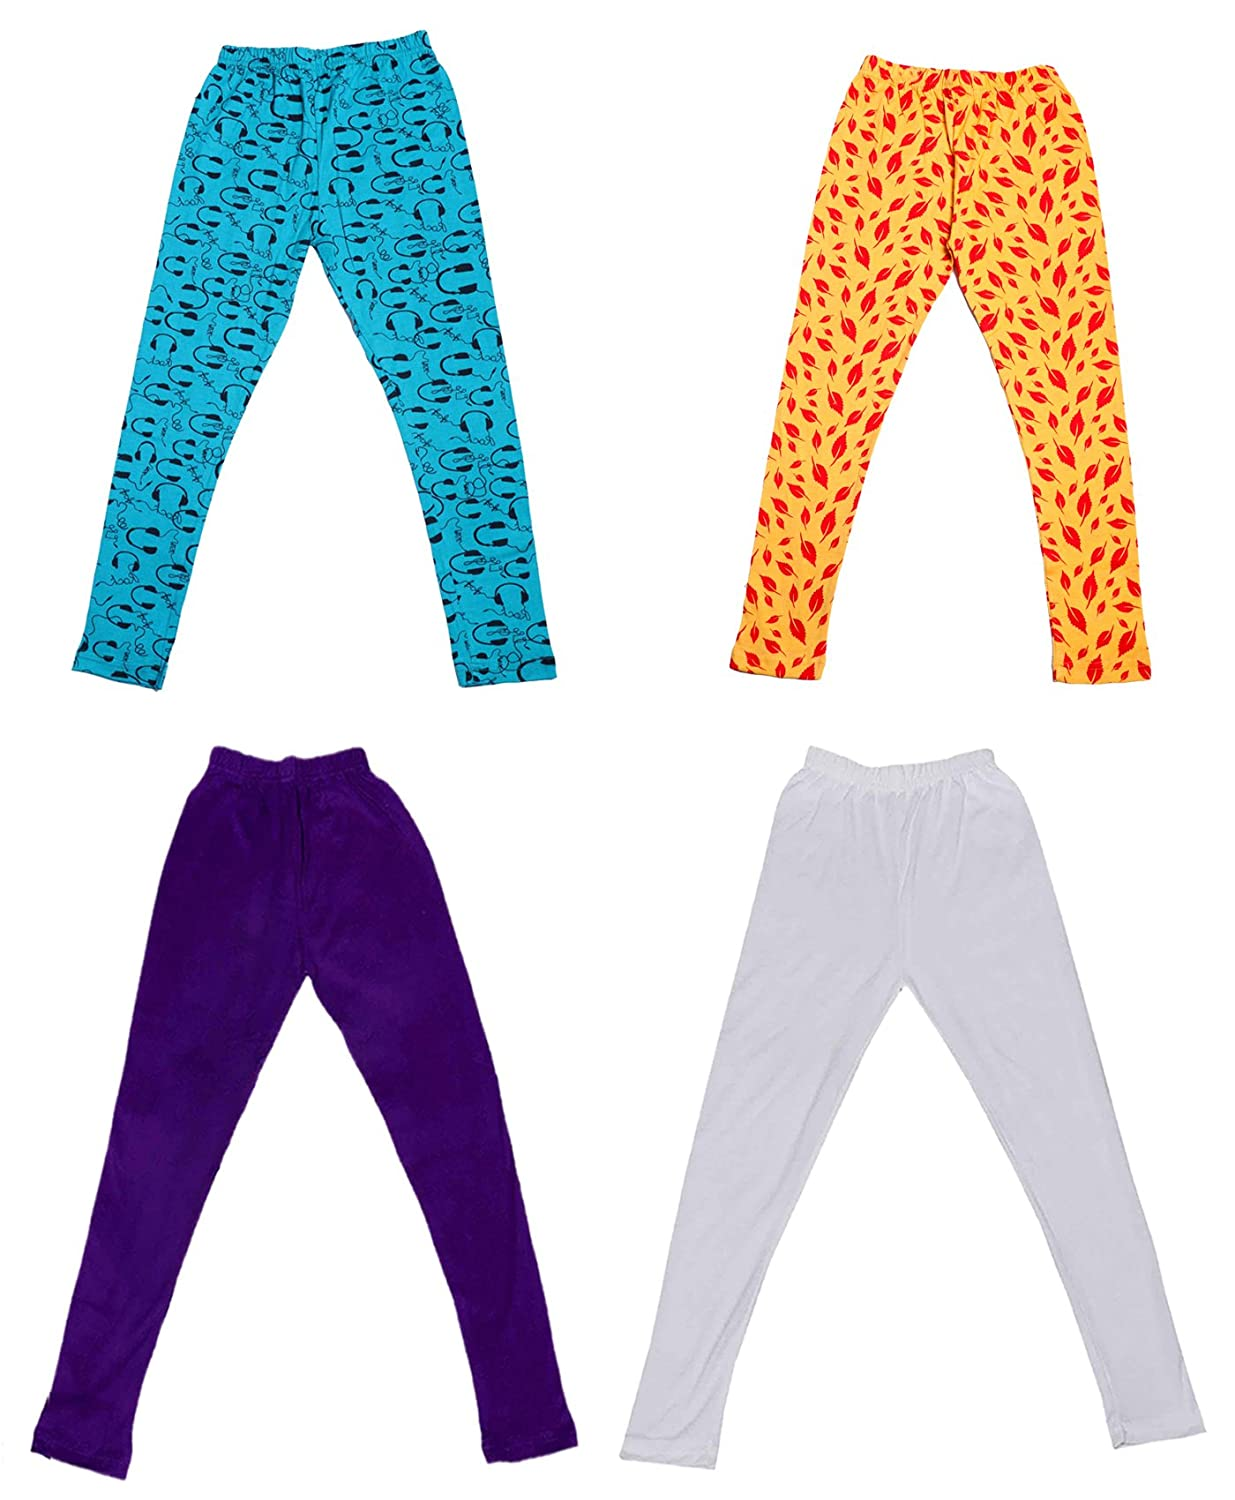 Pack Of 4 /_Multicolor/_Size-1-3 Years/_71402031718-IW-P4-22 Indistar Girls 2 Cotton Solid Legging Pants and 2 Cotton Printed Legging Pants